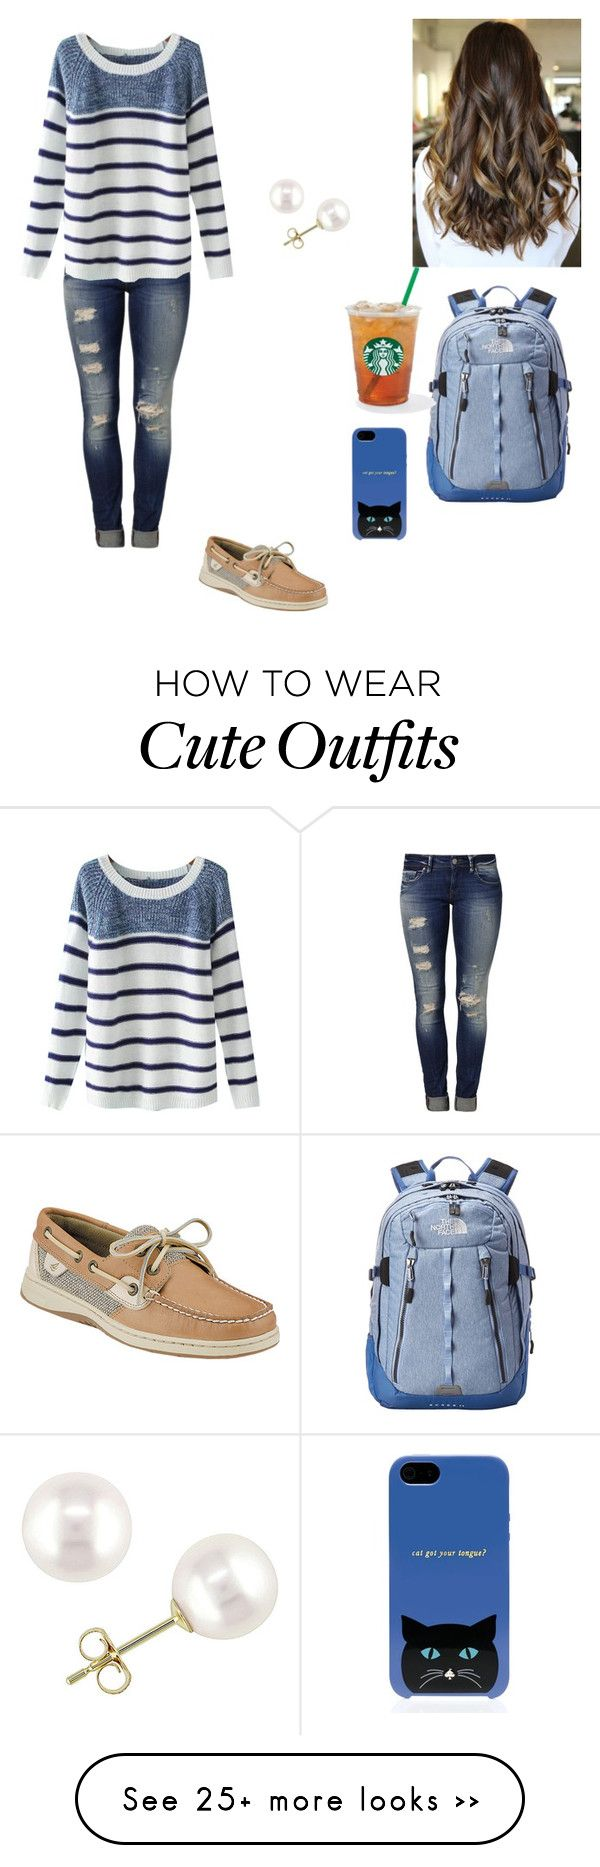 """""""An cute & easy school day outfit"""" by edwardsleanna on Polyvore featuring Mavi, Chicnova Fashion, Sperry Top-Sider, Miadora, The North Face and Kate Spade"""